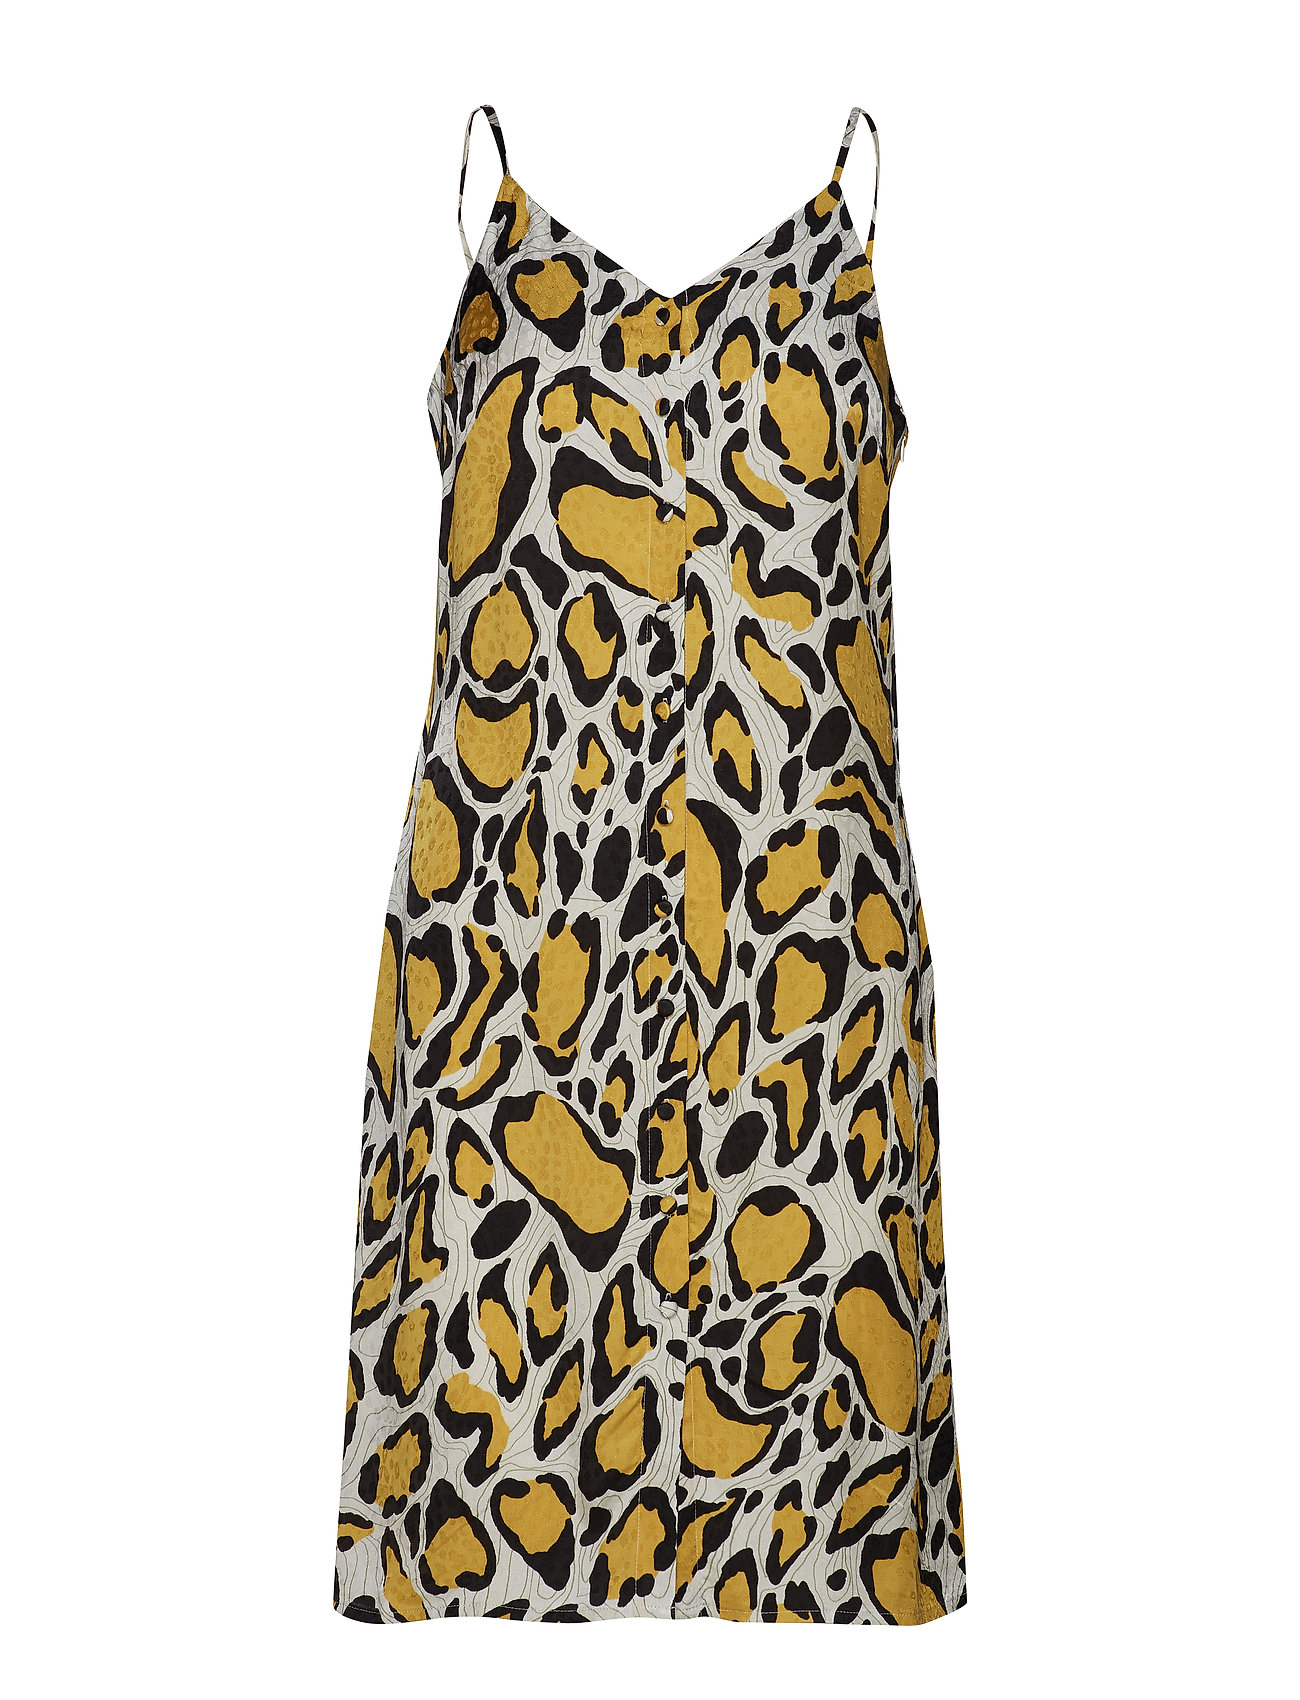 Irinagz AnimalGestuz AnimalGestuz Irinagz Dress Ao19yellow Ao19yellow Ao19yellow Dress Dress Irinagz AnimalGestuz BredxoC